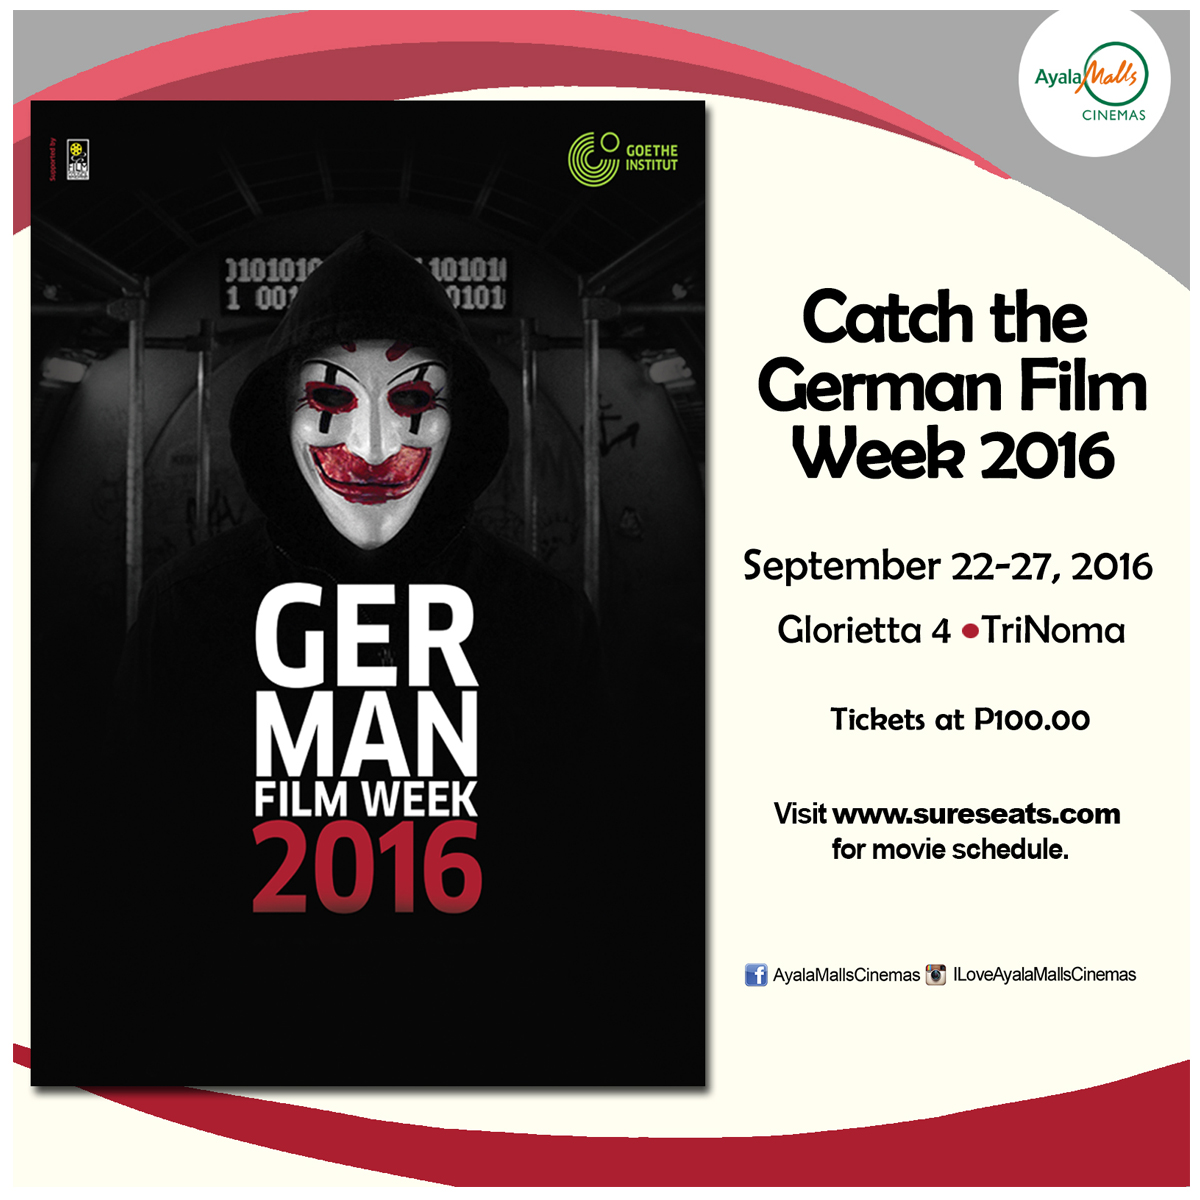 german-film-week-at-ayala-malls-cinemas_